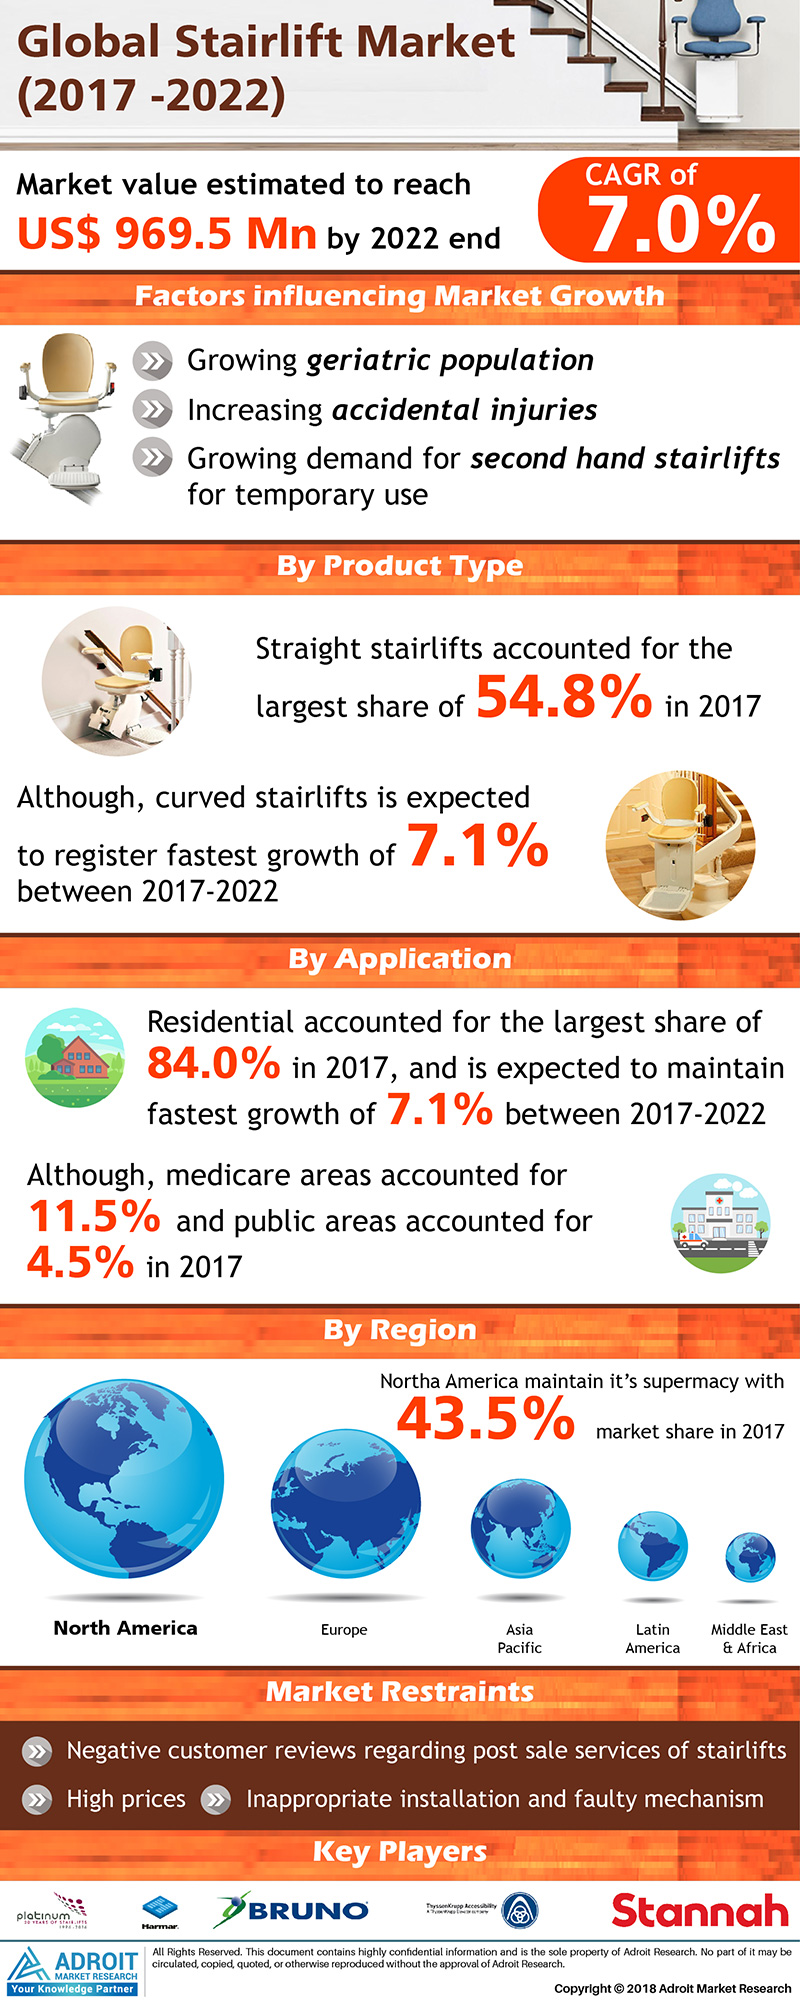 Stairlift Market Analysis 2019-2022 Popular Types, Consumer Benefits, Key Features, Top Manufacturers, Growth Drivers, Business Challenges & Restraints with Global Forecast 1